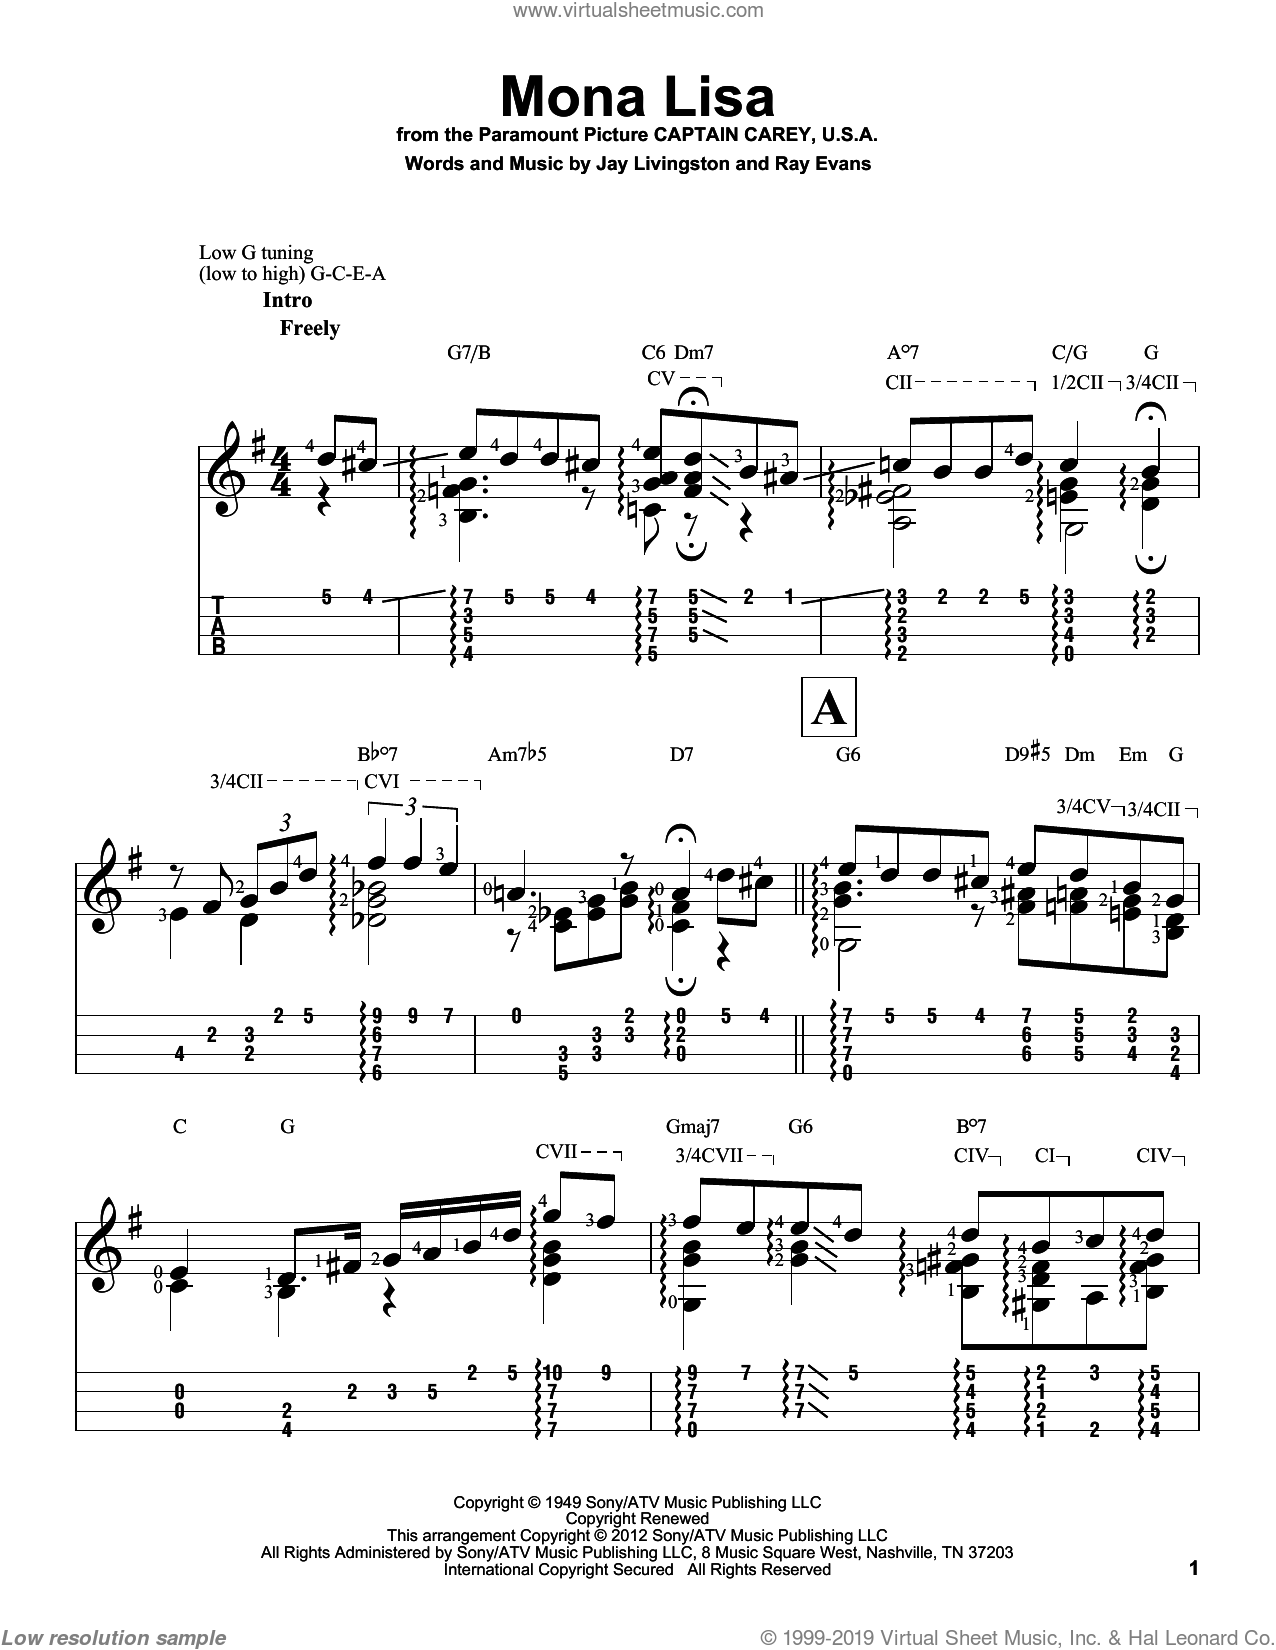 Mona Lisa sheet music for ukulele by Ray Evans